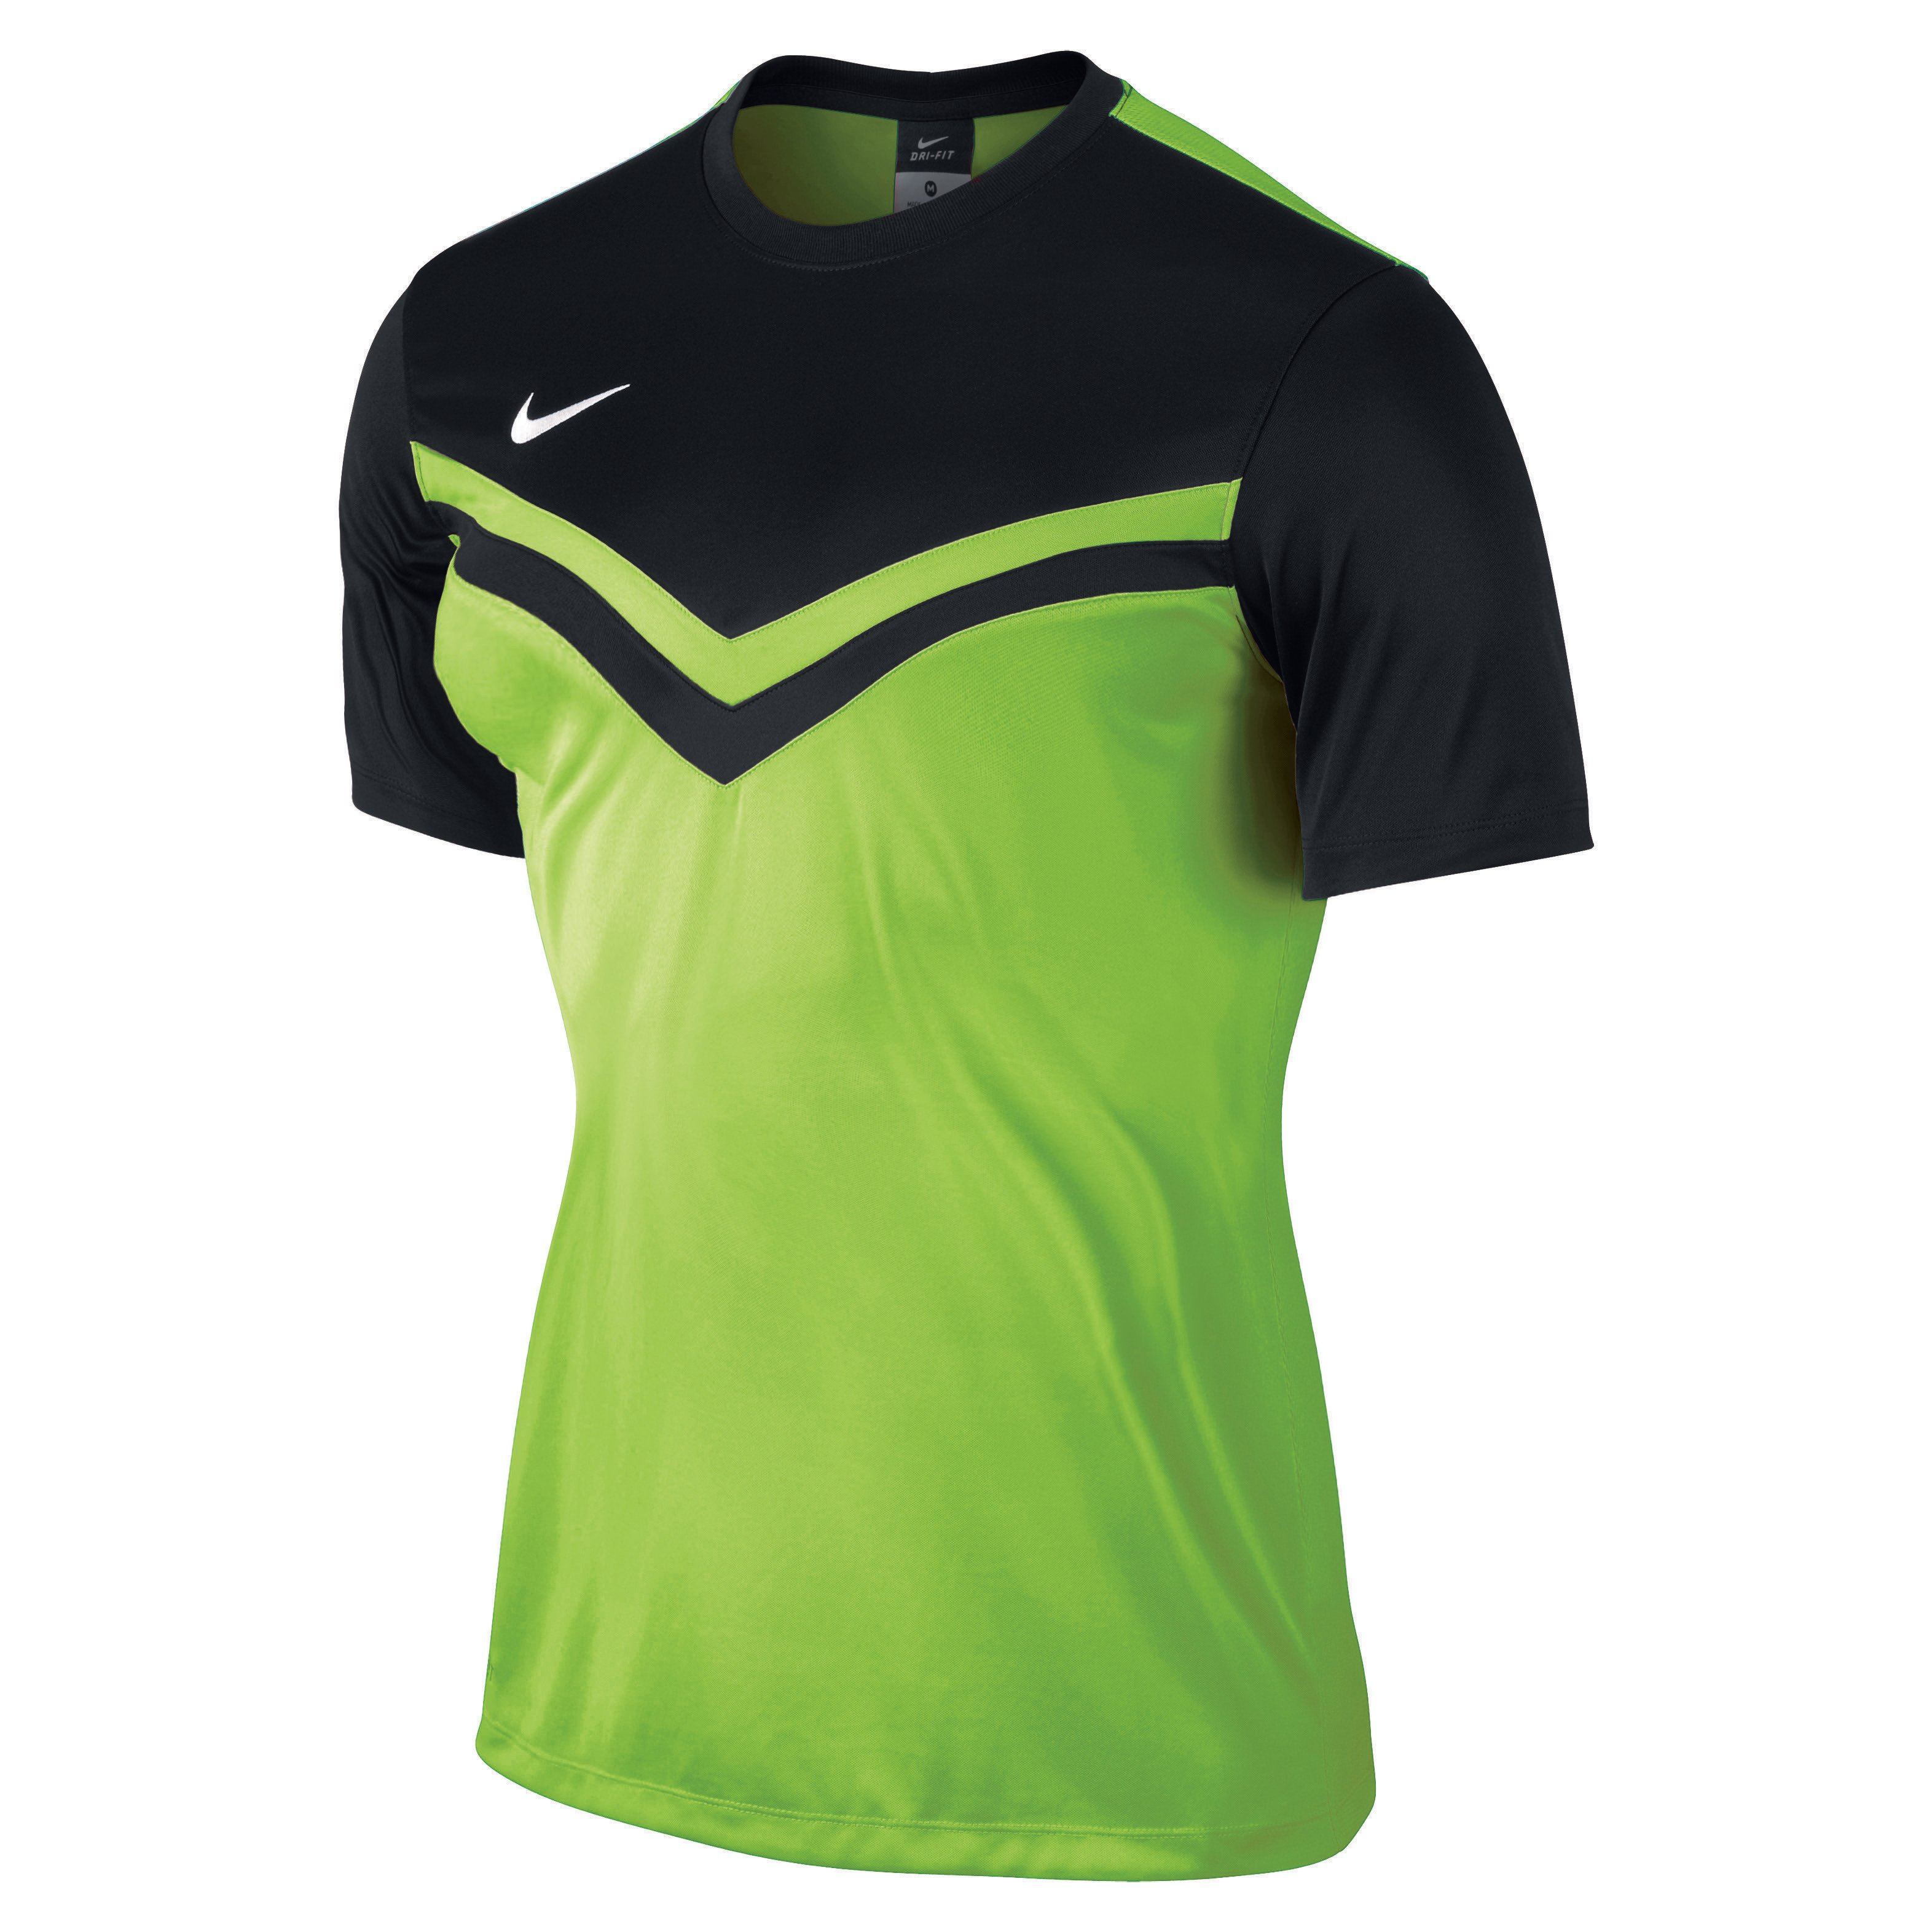 Women s Victory II Jersey (Electric Green Black) - The Football Factory 640ce4c07